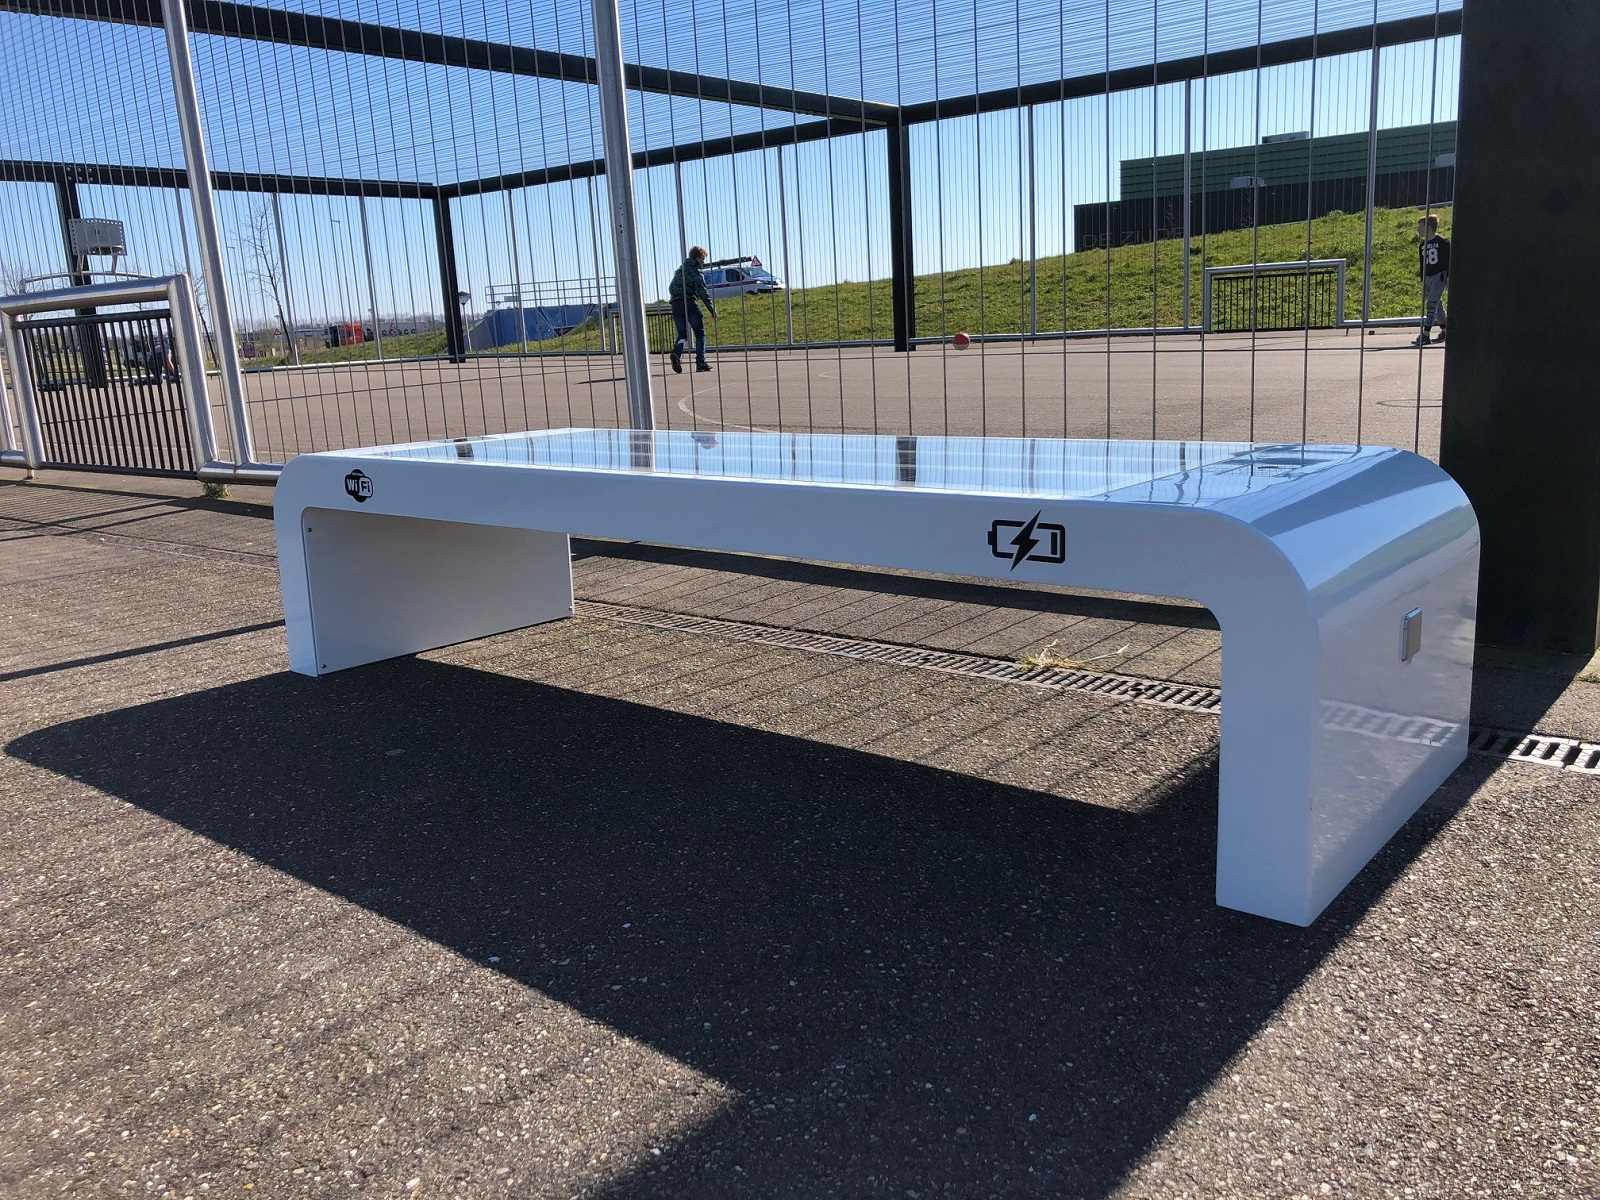 Solar bench WiFi 4EU